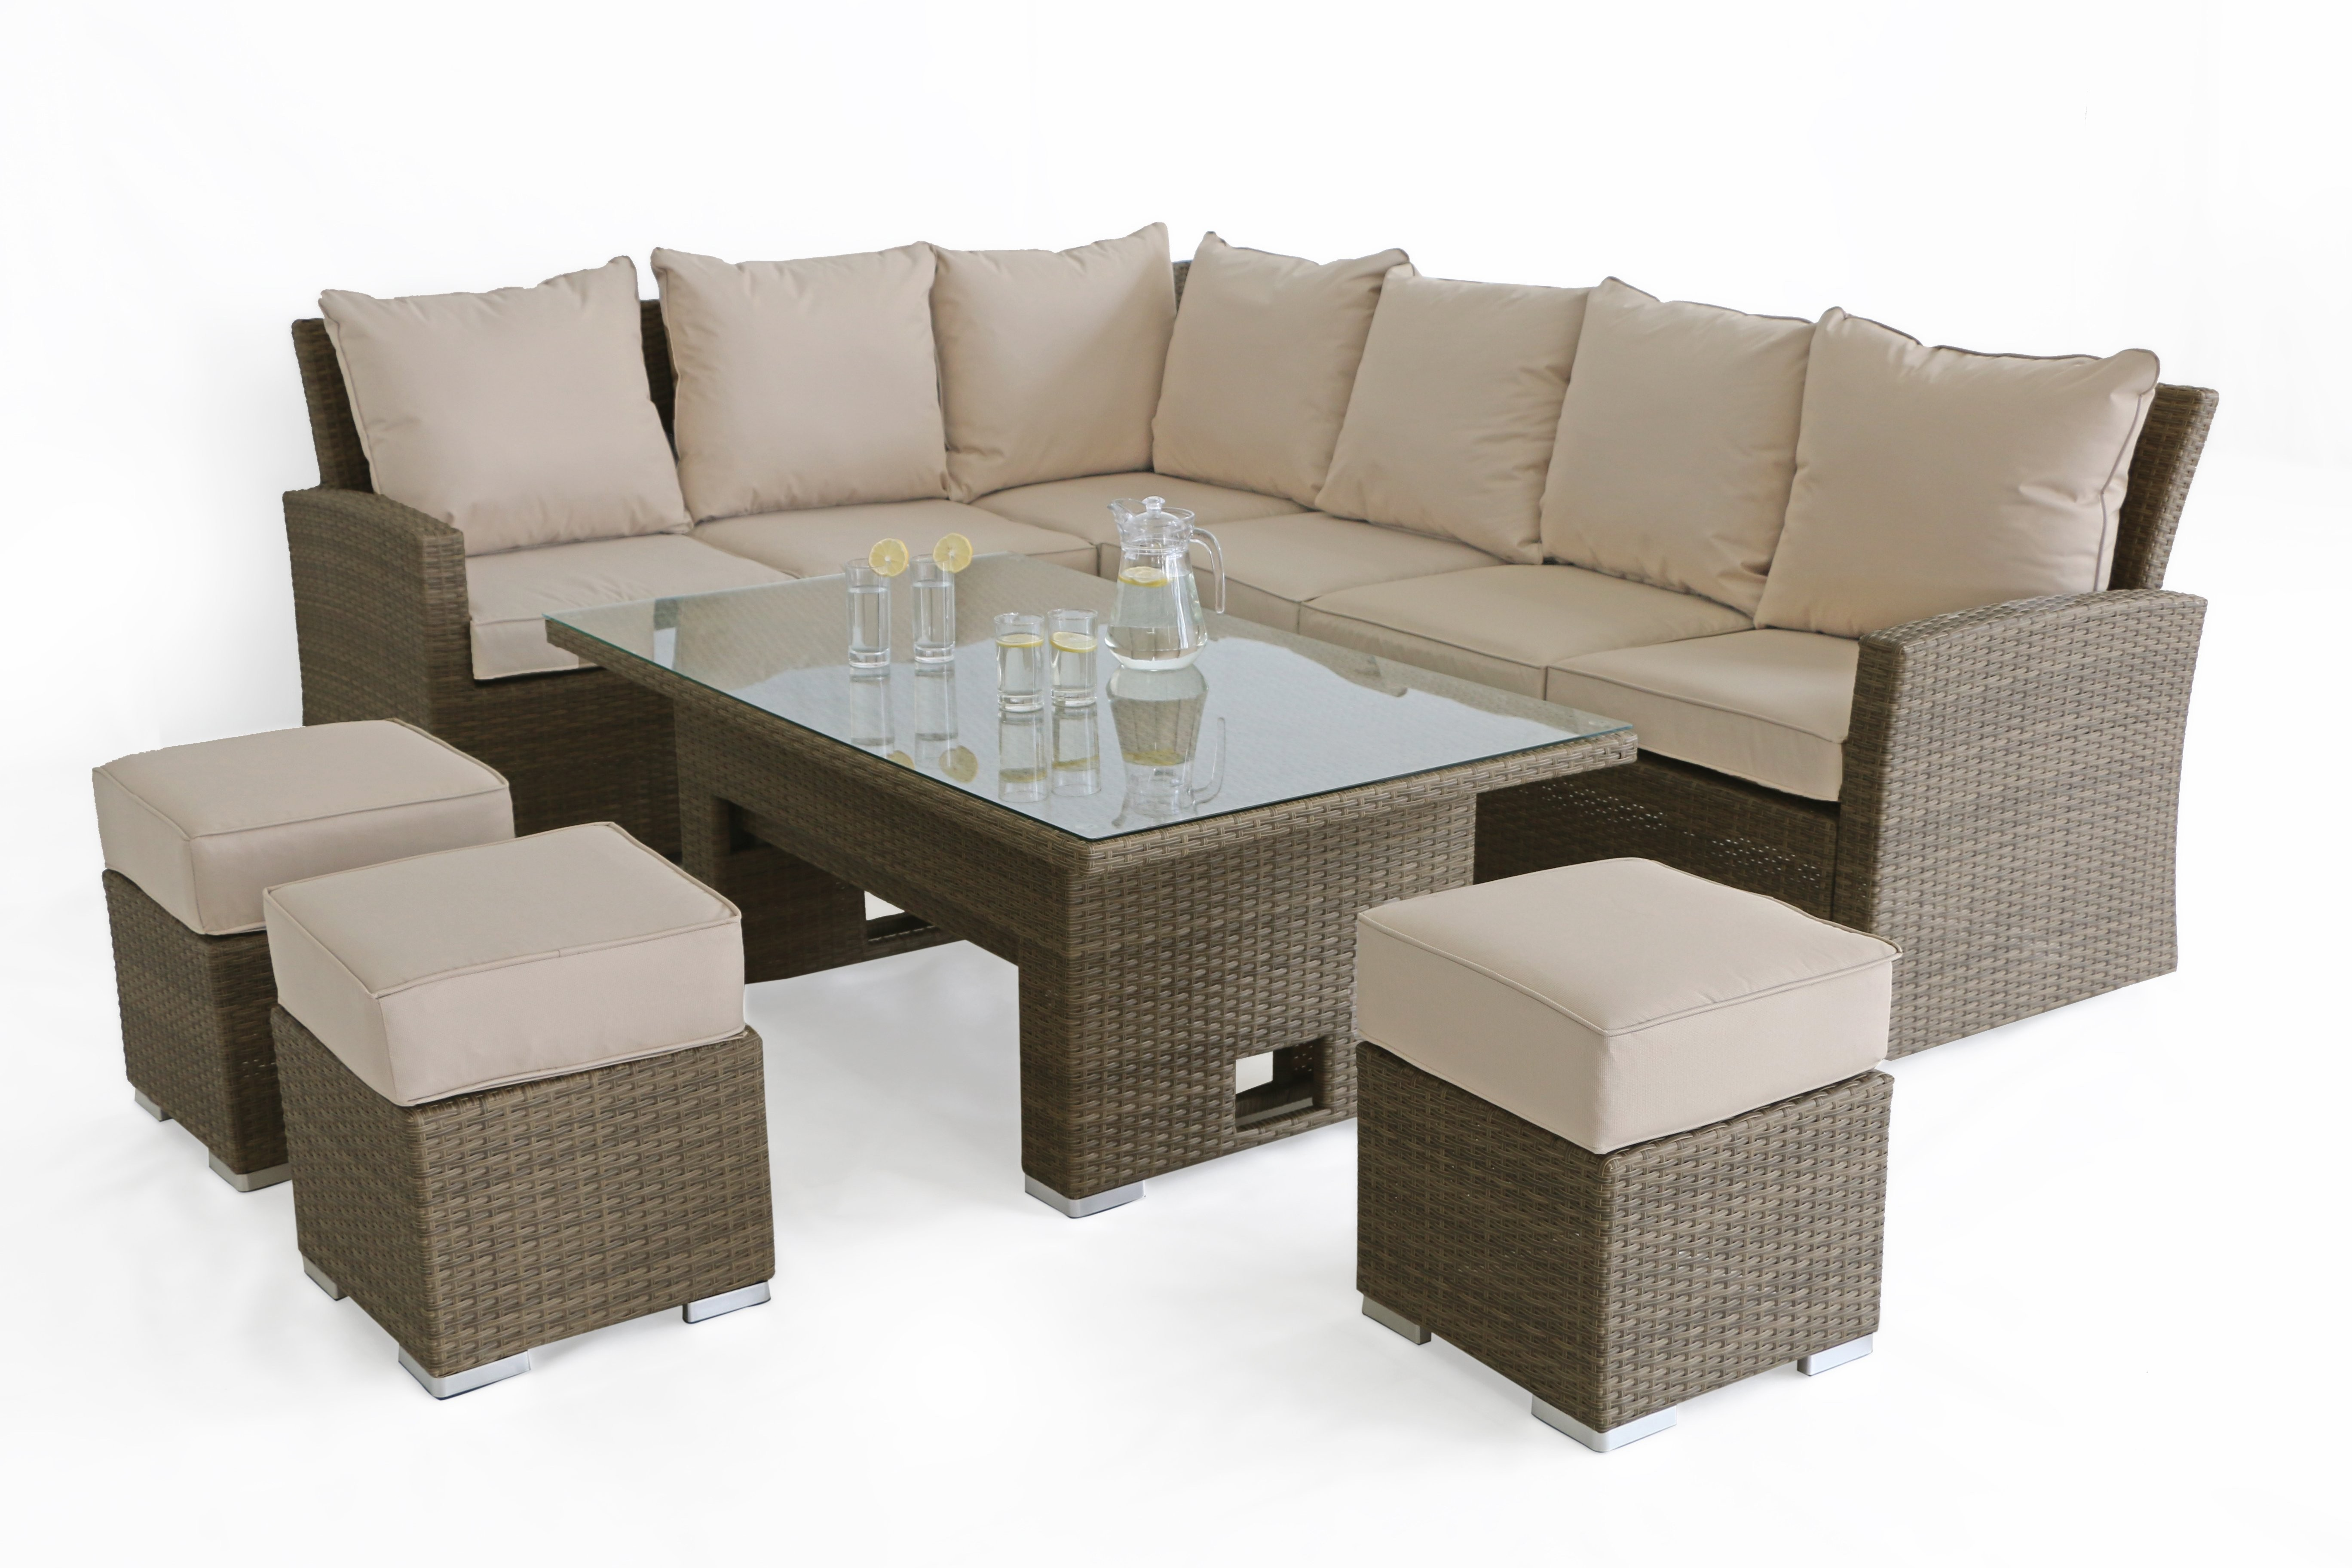 Maze Rattan Tuscany Kingston Garden Sofa Dining Set With Rising Table